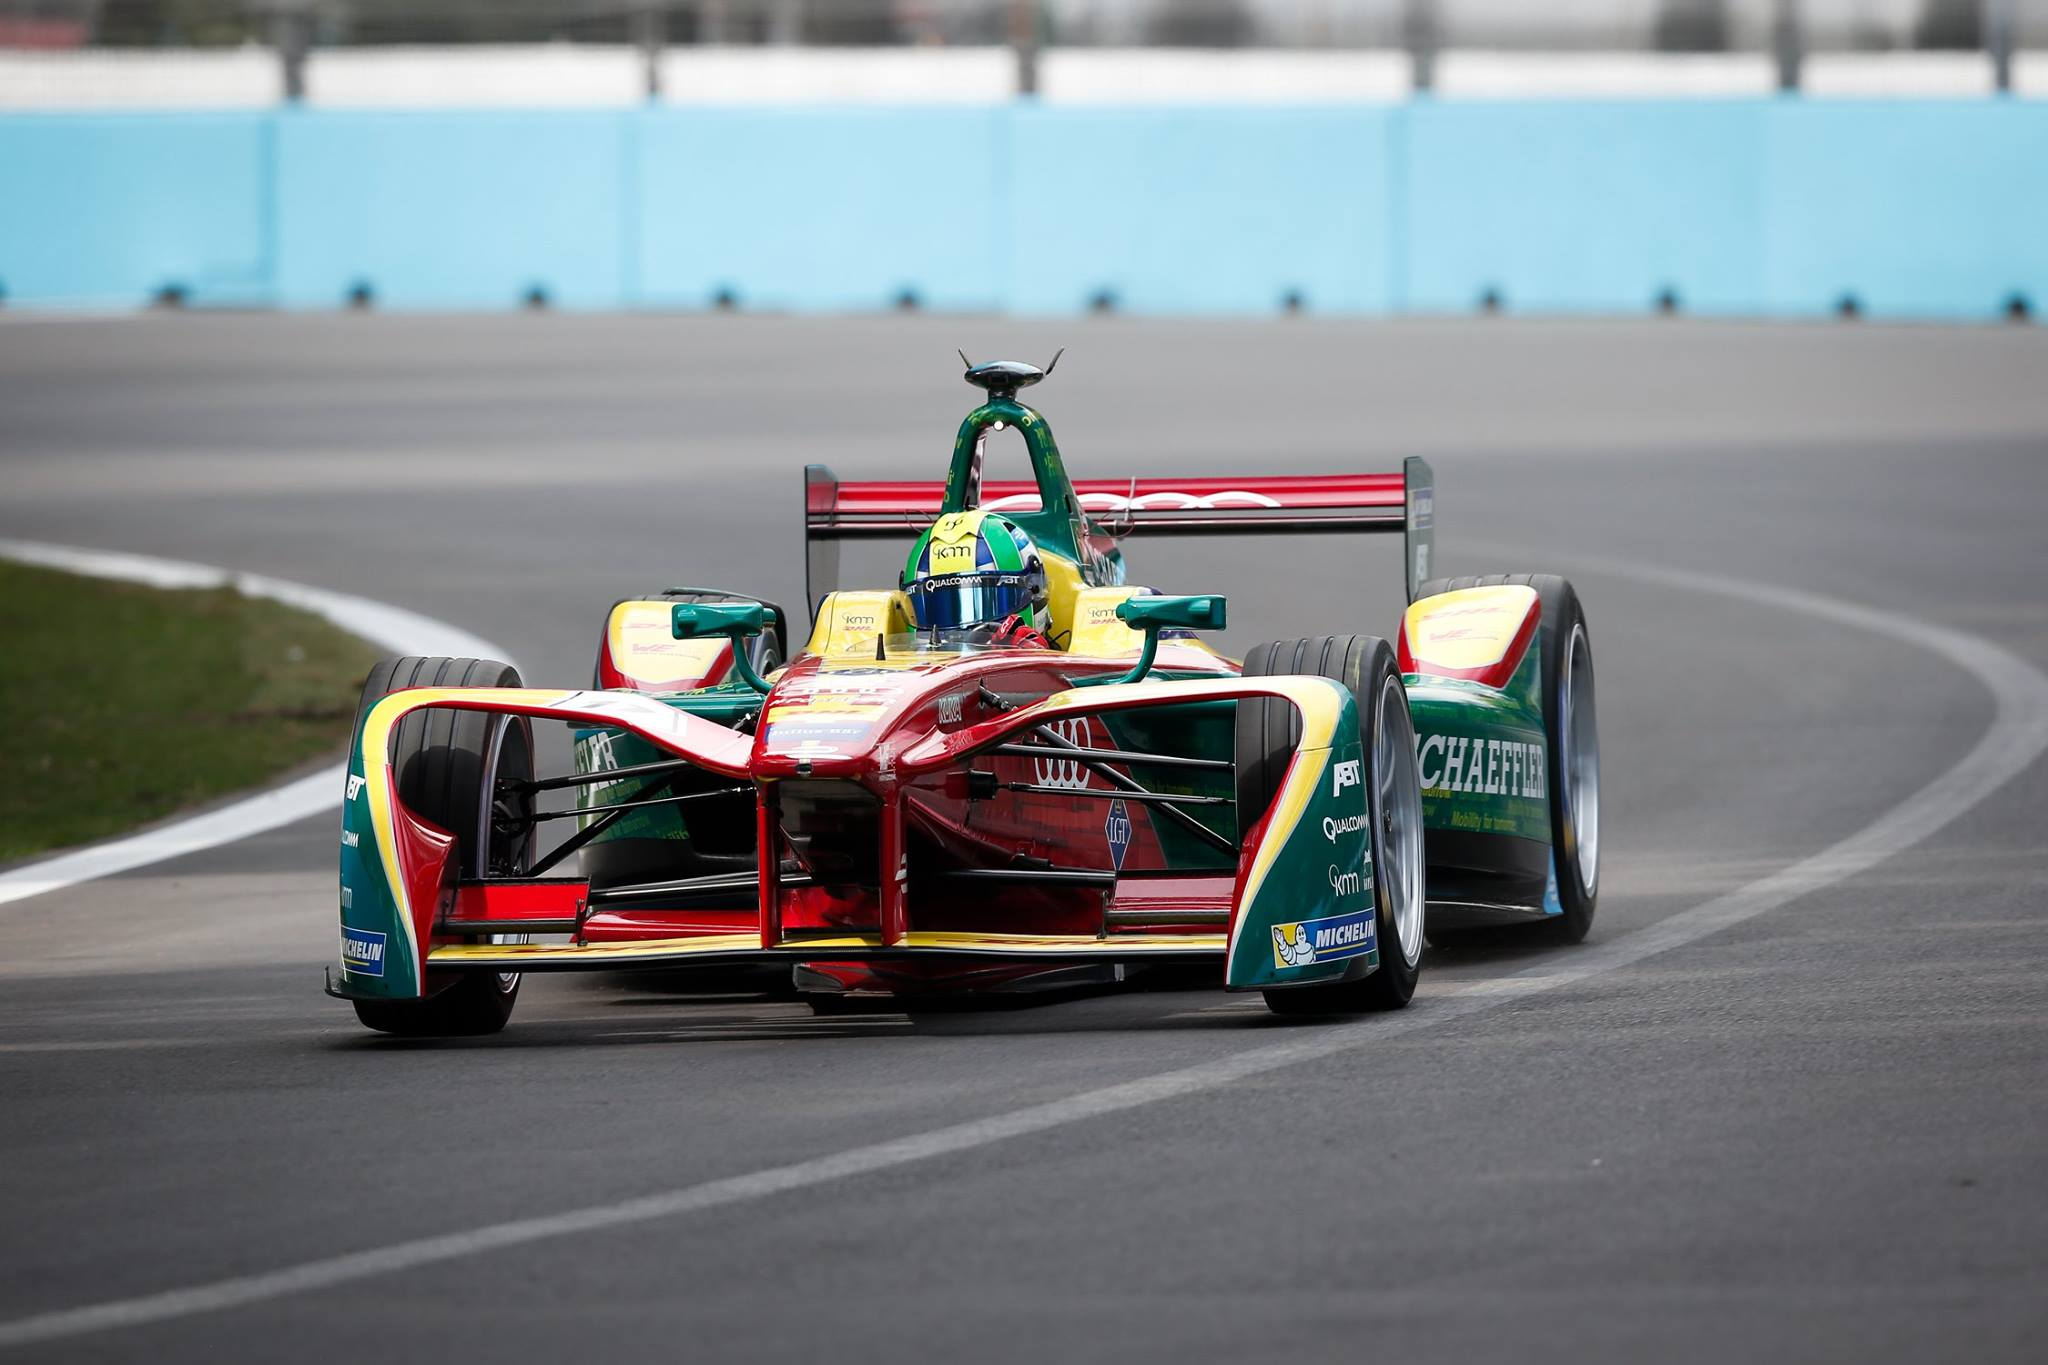 formula e lucas di grassi wins mexico eprix after starting last gtspirit. Black Bedroom Furniture Sets. Home Design Ideas